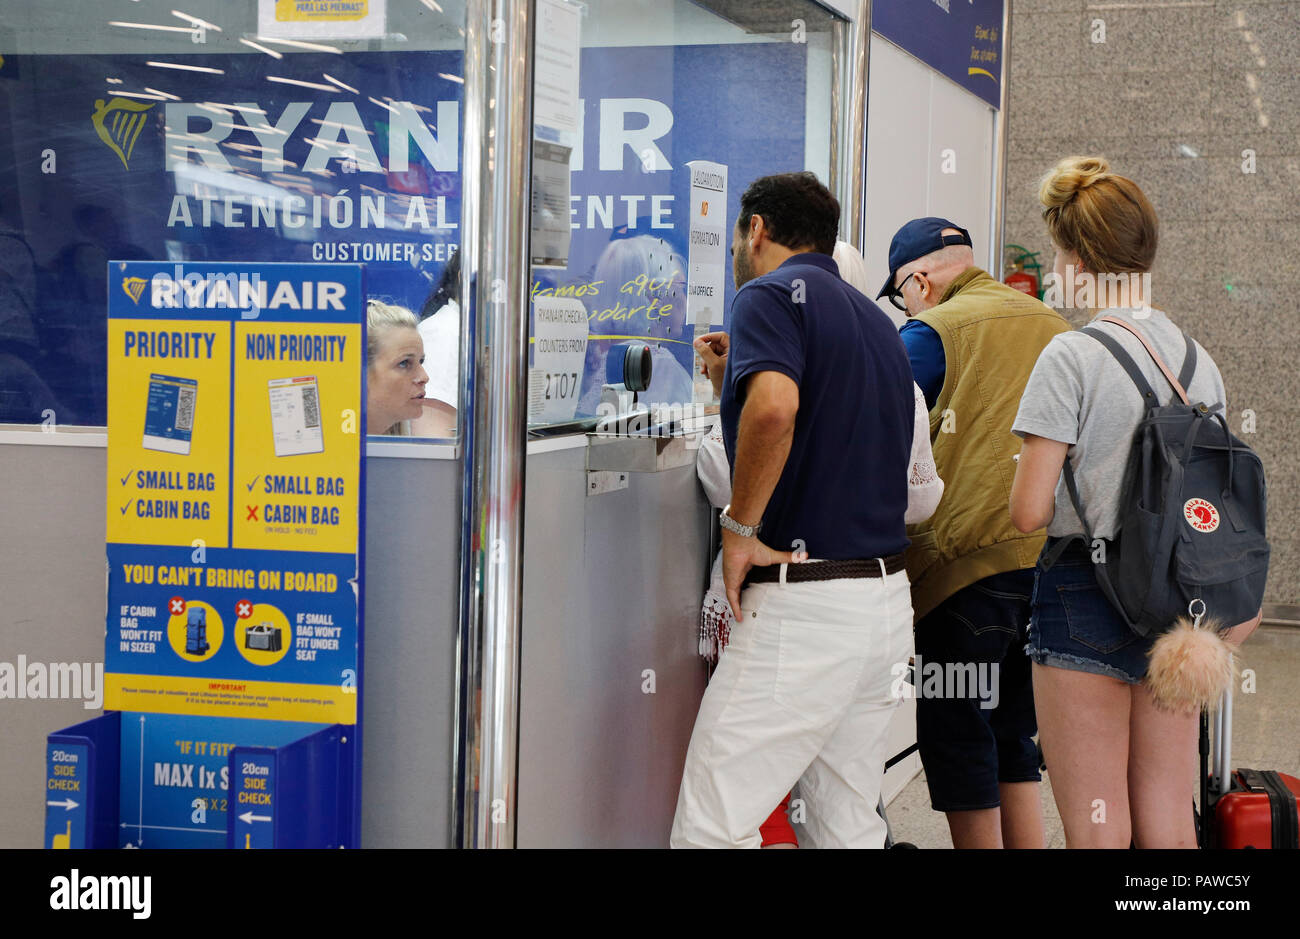 Mallorca, Spain.  25 July 2018, Spain, Mallorca, Palma: Passengers are queuing up at the Ryanair service desk at Palma de Mallorca airport. The start of a two-day strike by cabin crew at the low-cost airline Ryanair has caused great displeasure among countless travellers in several European countries. The highest number of cancellations occurred in Spain, when Ryanair cancelled 200 flights. Credit: dpa picture alliance/Alamy Live News Stock Photo